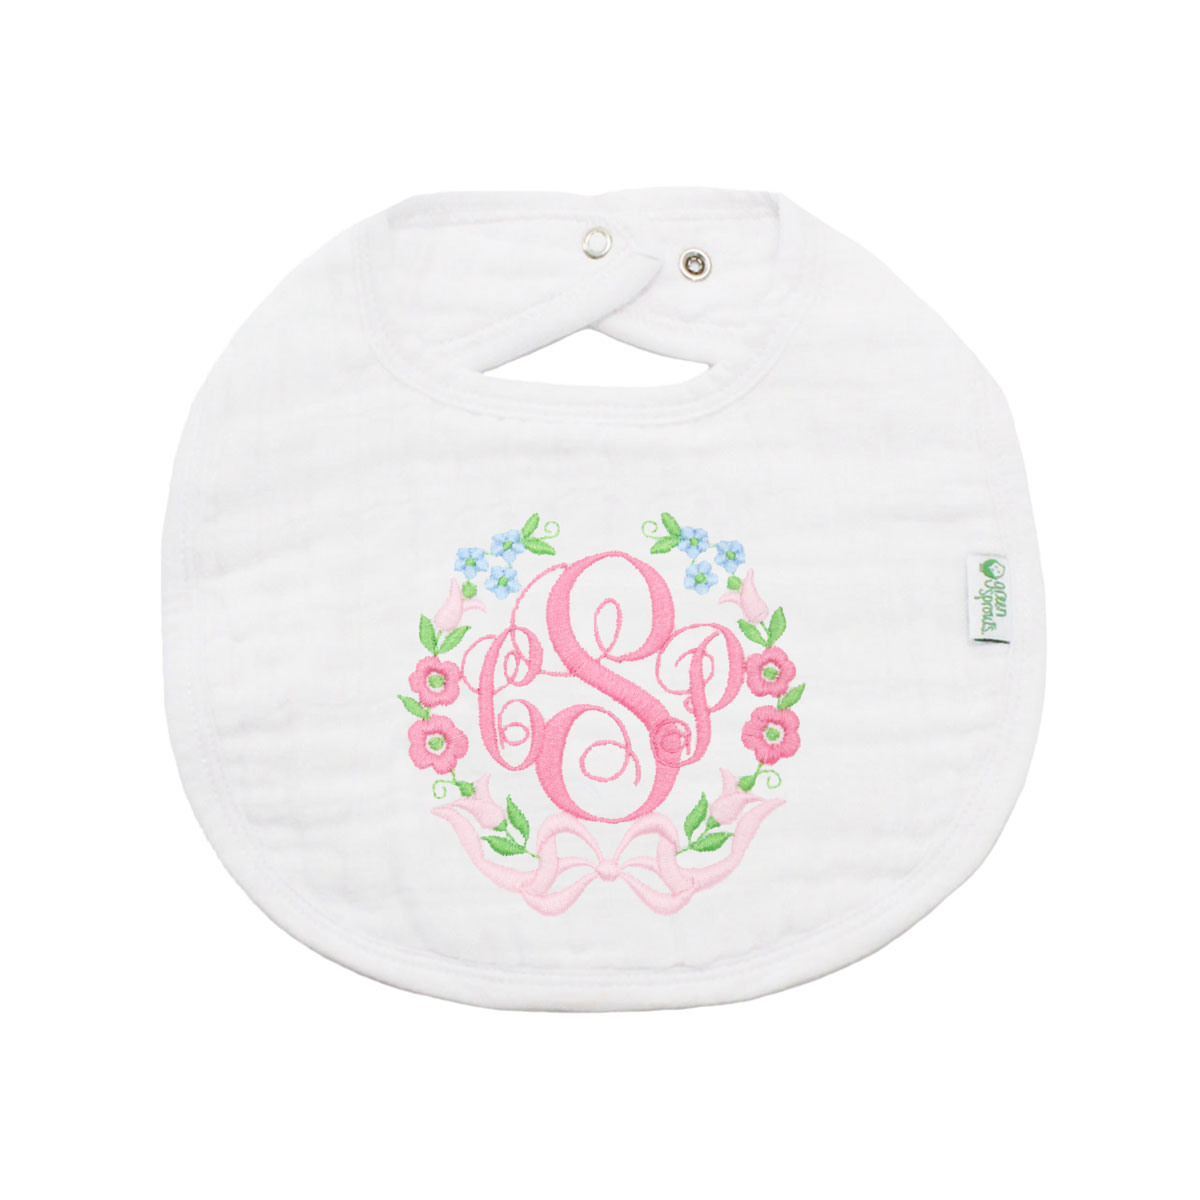 The Tot Organic Cotton White Bib with Personalized Monogram in Bows